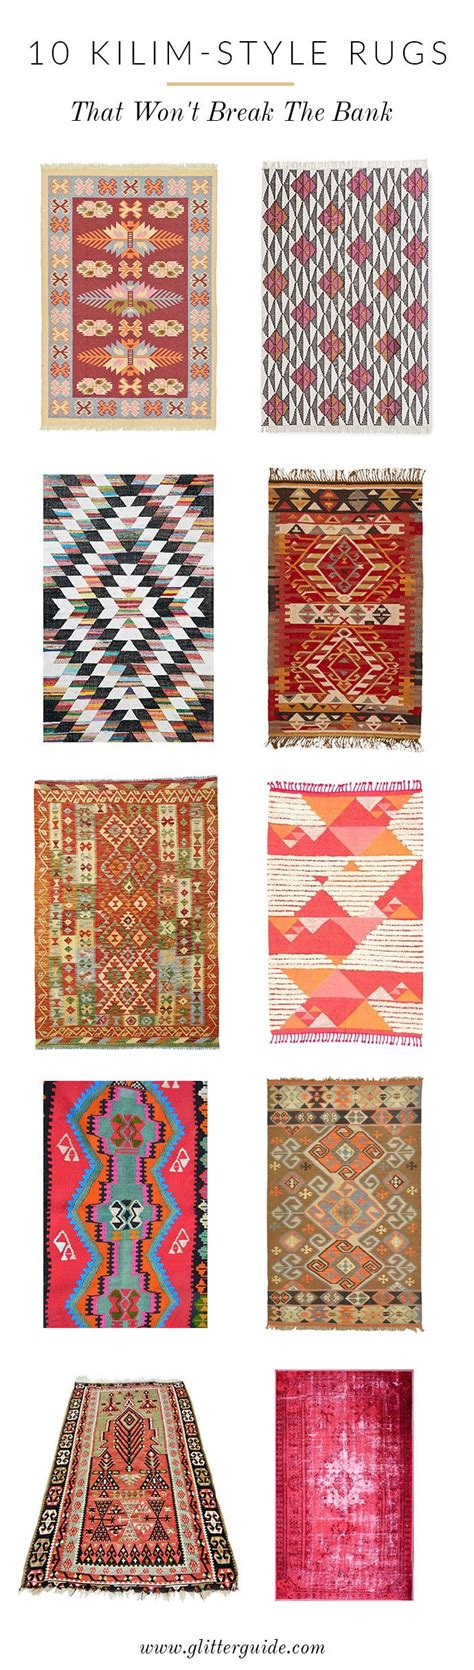 Rug Styles Guide by 10 Kilim Style Rugs That Won T The Bank New On